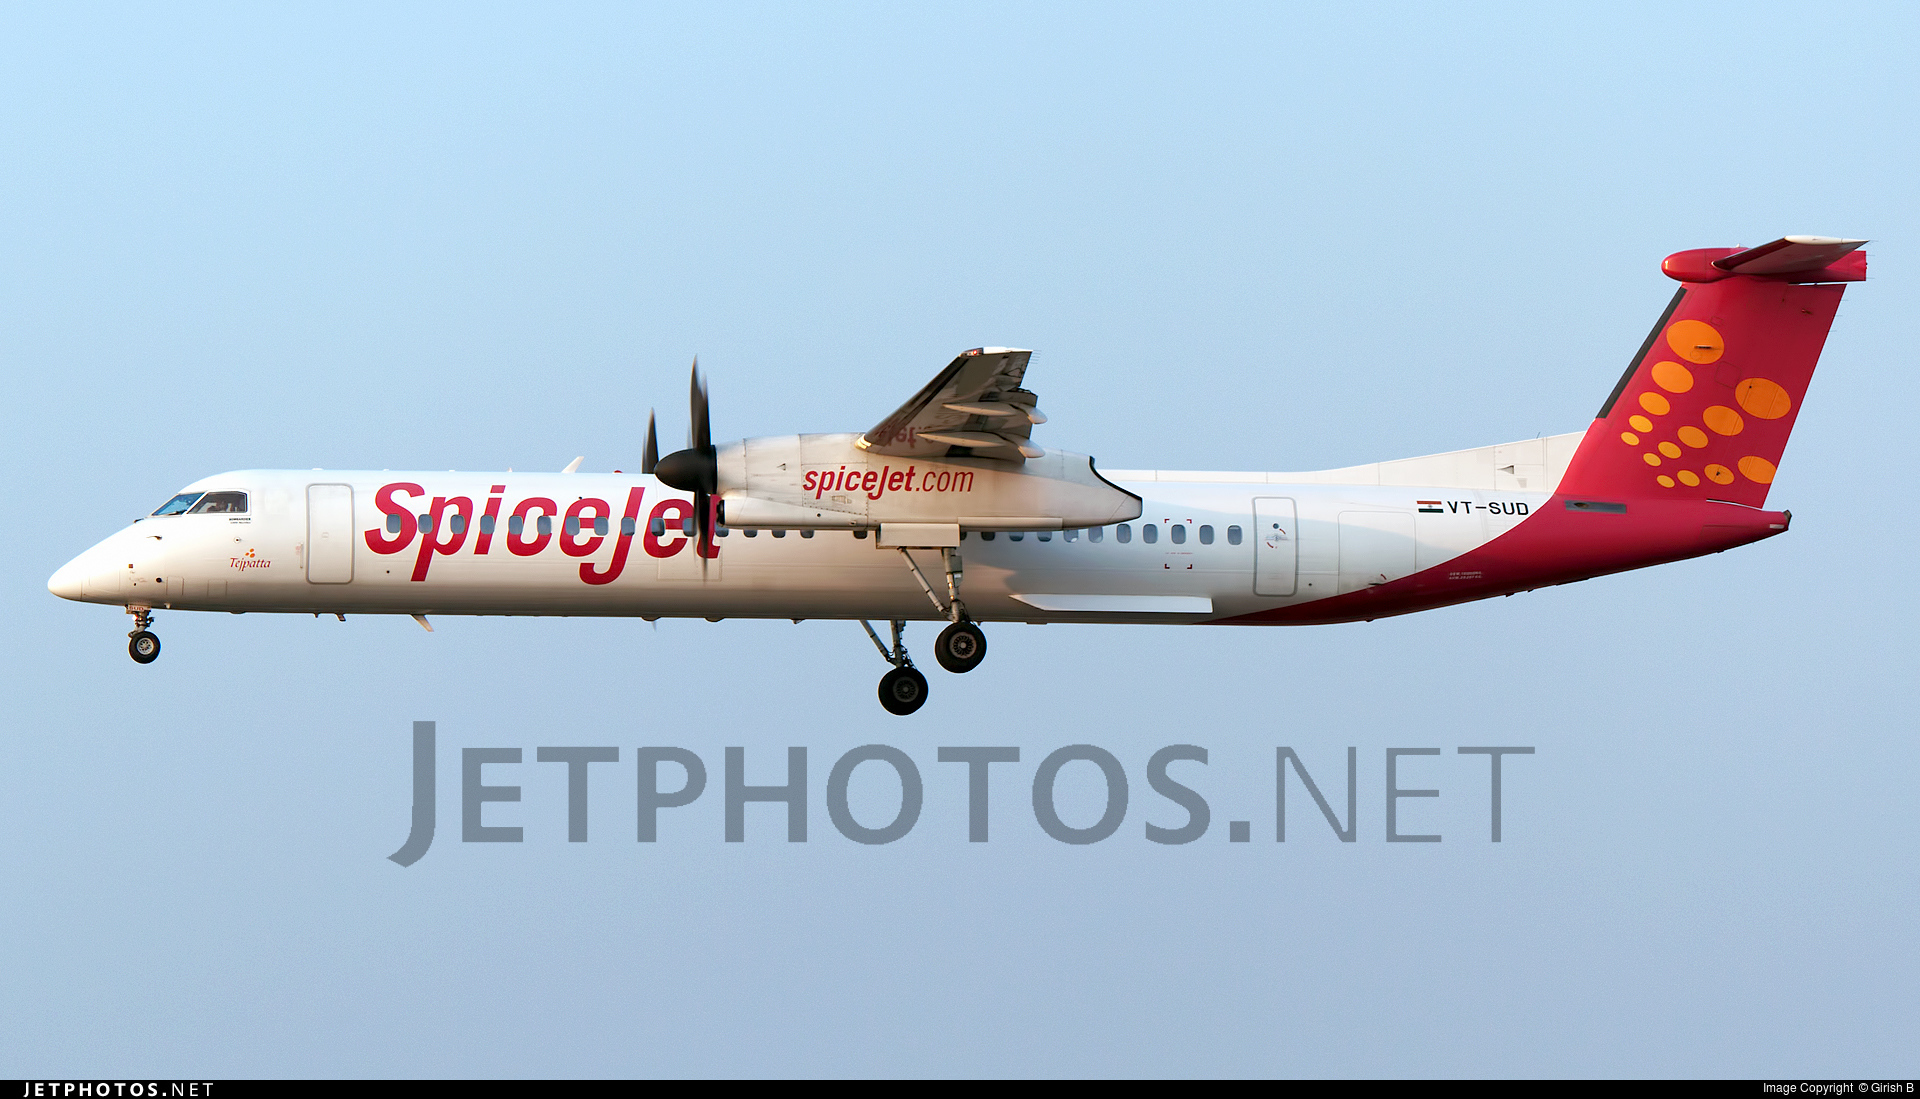 spicejet Spicejet 54k likes spicejet is a low-cost airline headquartered in gurugram, india it is the third largest airline in the country by number of.